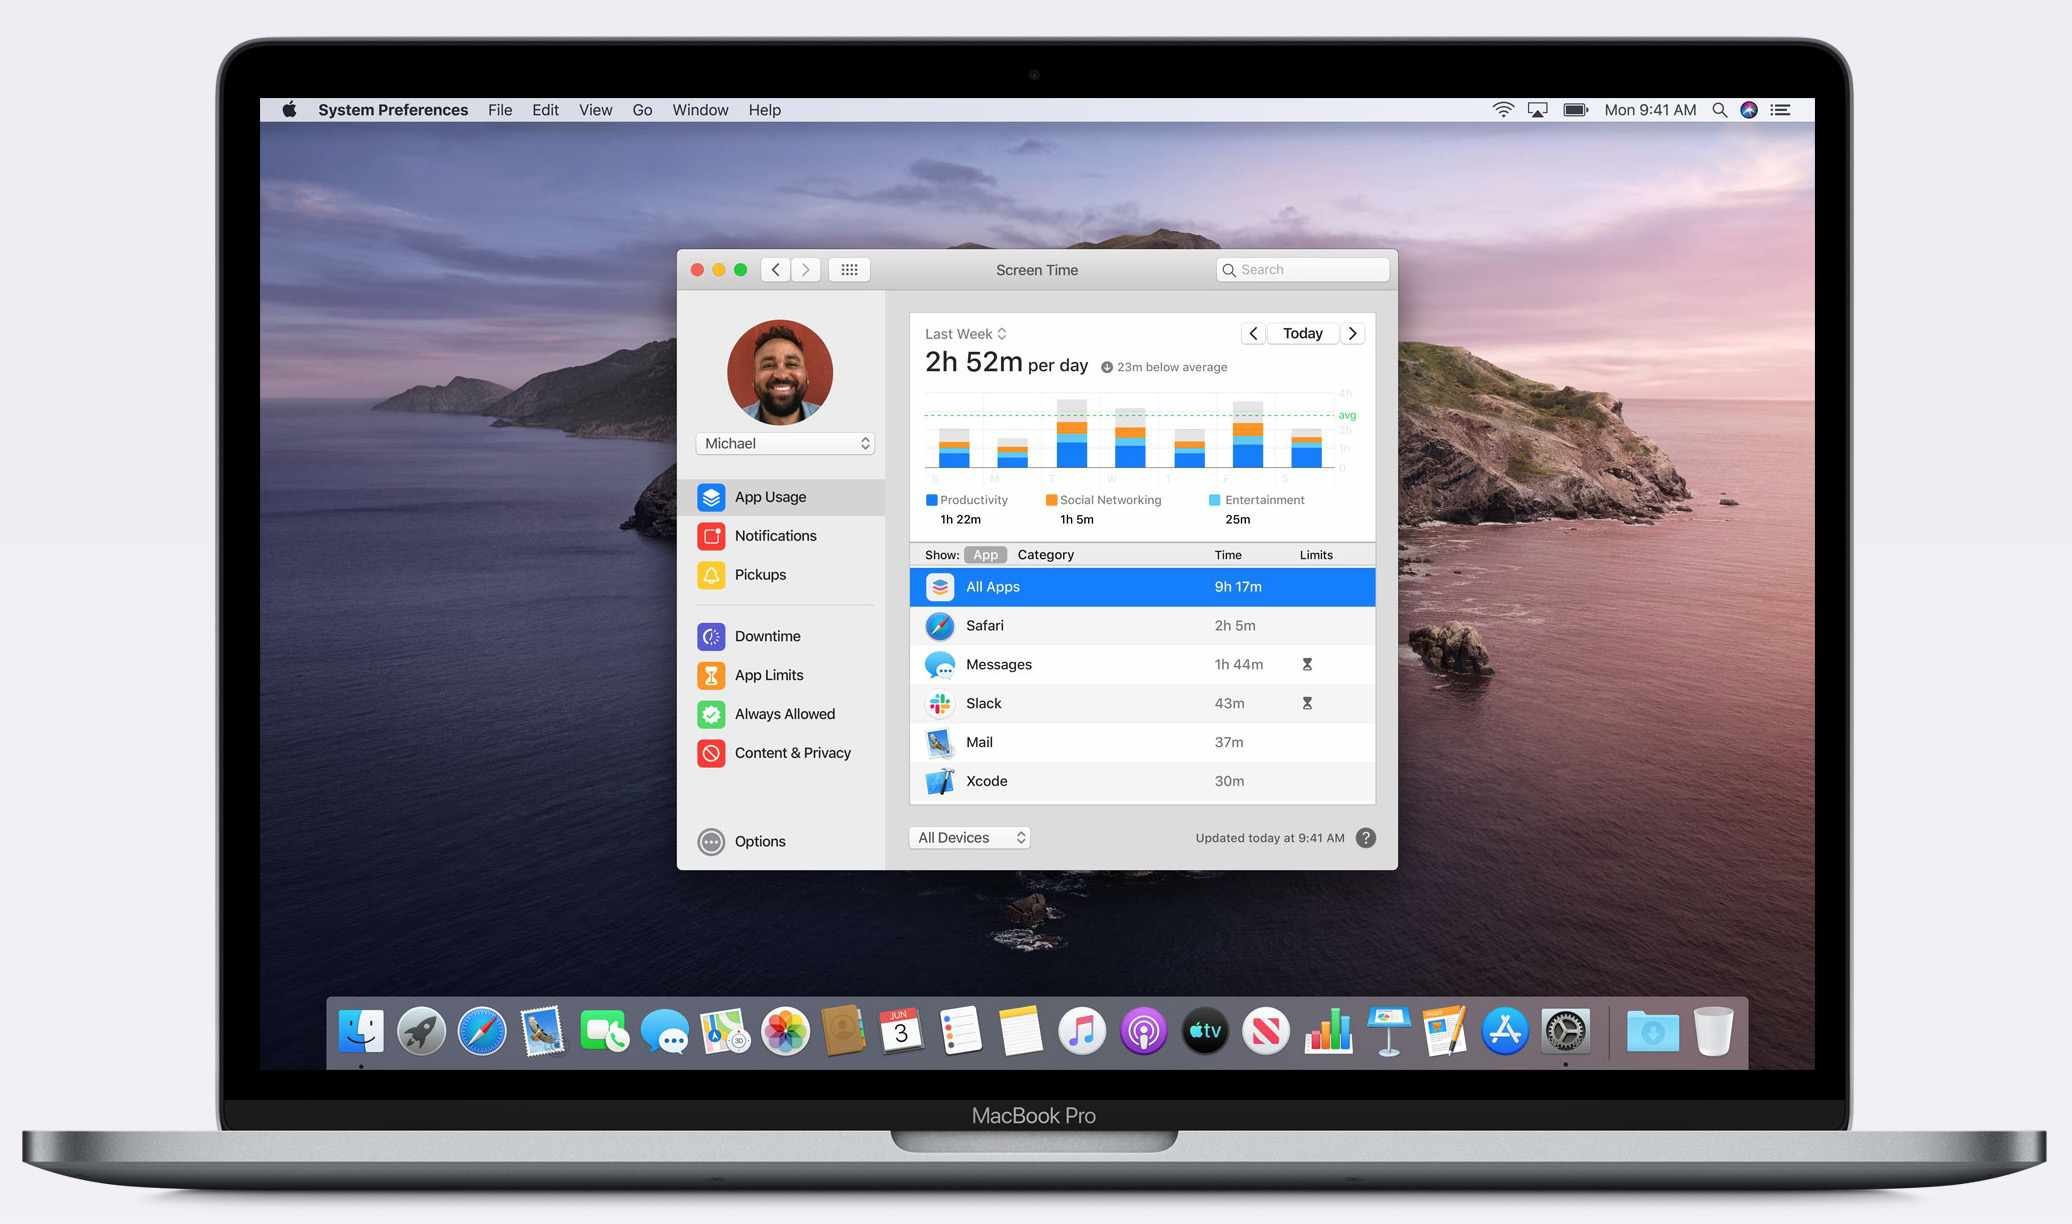 Screen Time on macOS Catalina